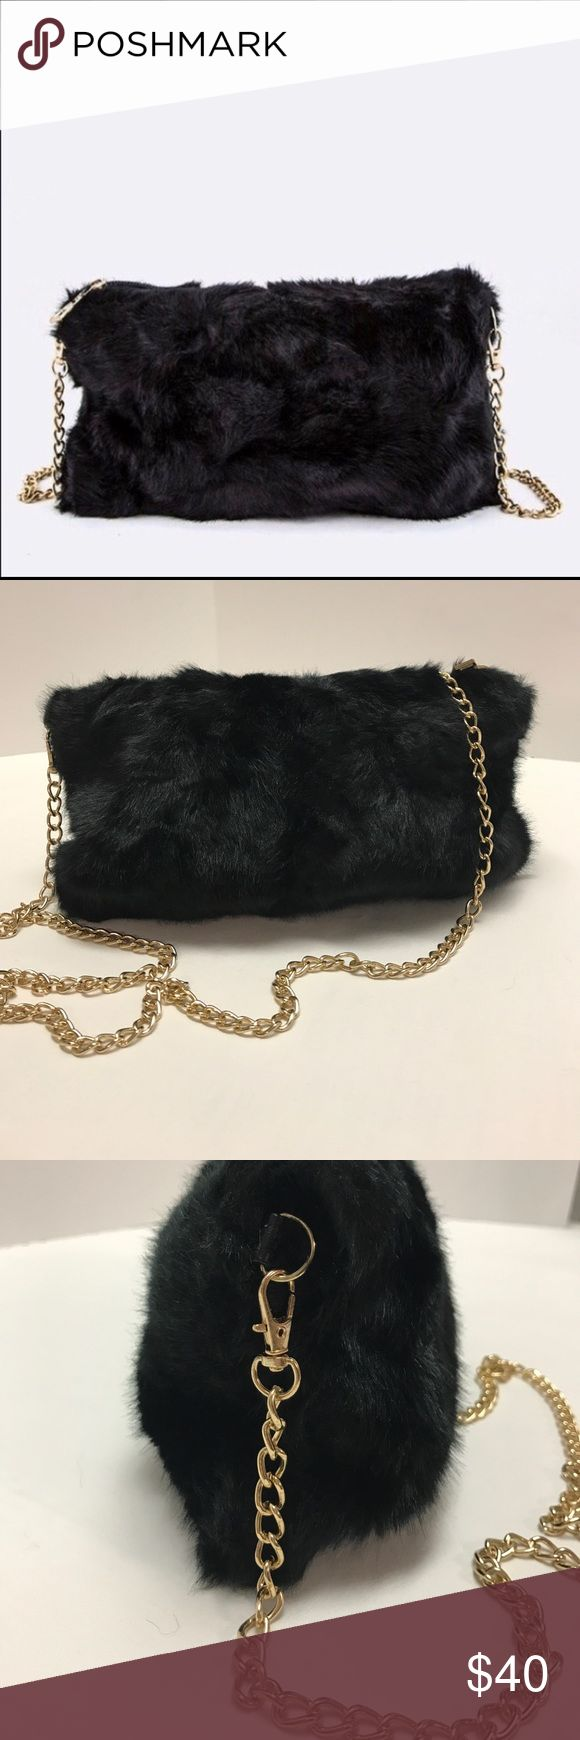 """Faux Fur Crossbody With Chain Strap This fun little purse is super fun and just the right size for a night on the town!  The faux fur is made of a poly/acrylic blend that should be hand washed & air dried  to ensure it retains its finish.  The bag has a top zipper closure in gold finished hardware and is lined with black satin. The strap is a gold finished chain that has a 22"""" drop and is removable if you would like to carry the bag as a clutch.  The dimensions of the bag are approx. 10""""W x…"""